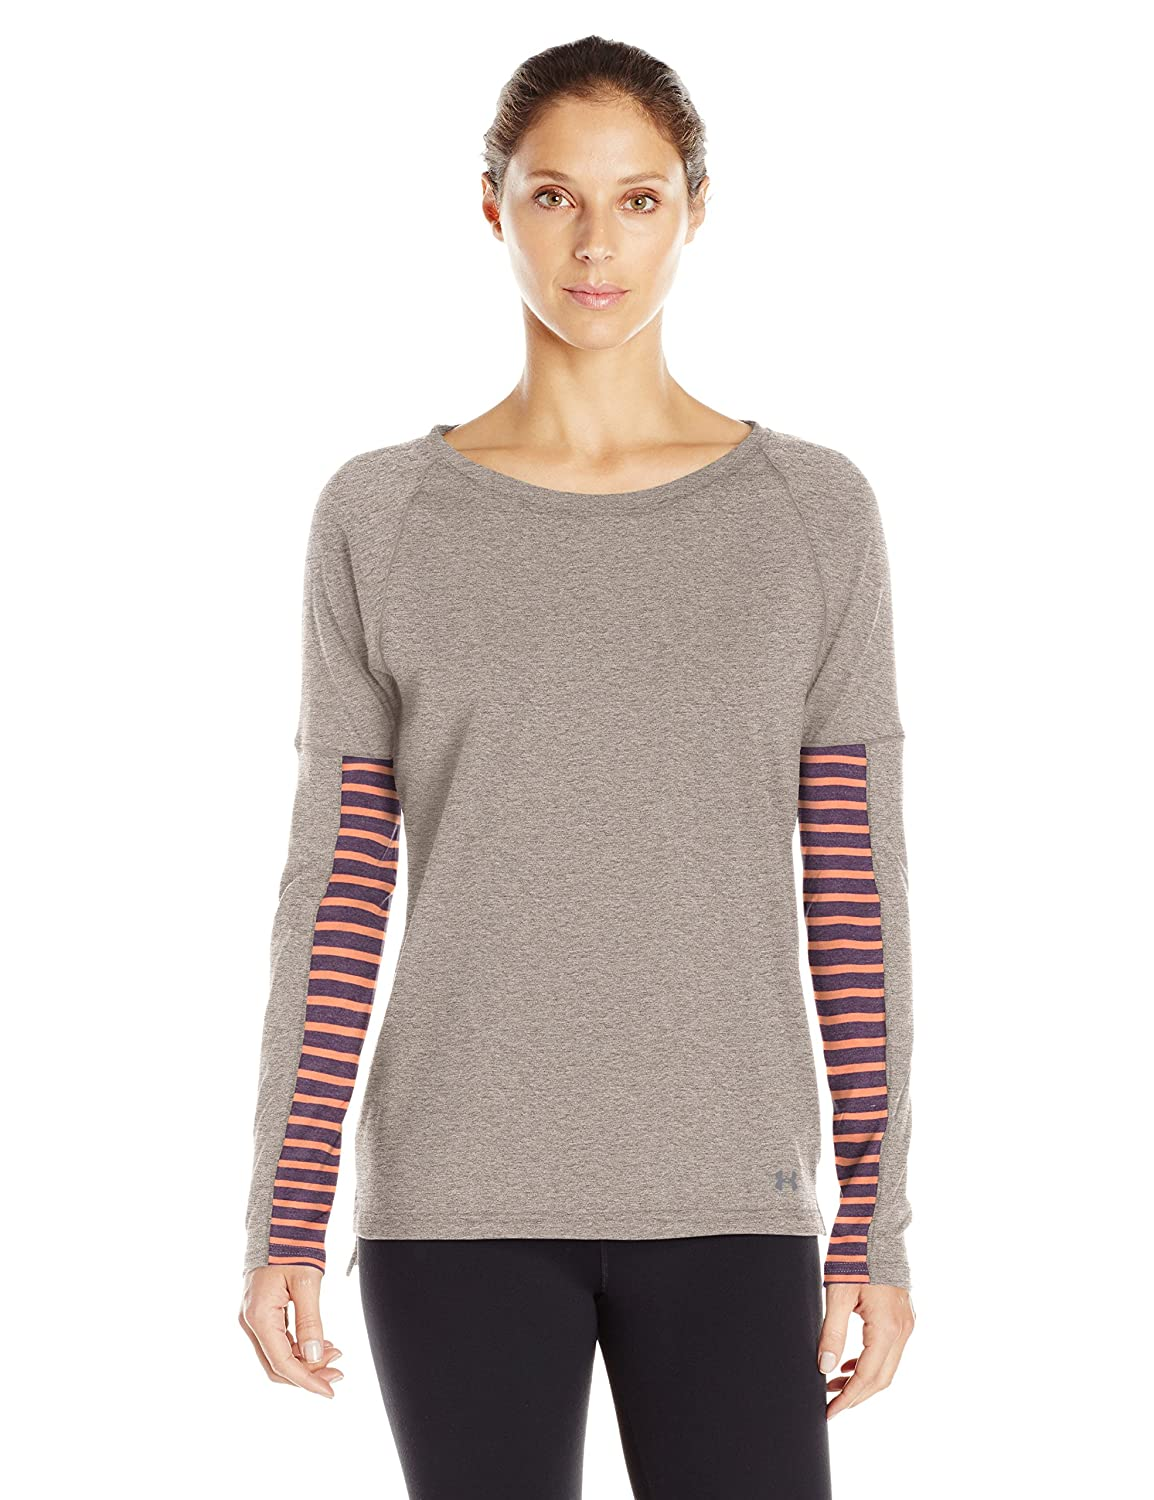 quality design bd7f6 ecce7 Amazon.com  Under Armour Womens Rest Day Long Sleeve Top  Clothing